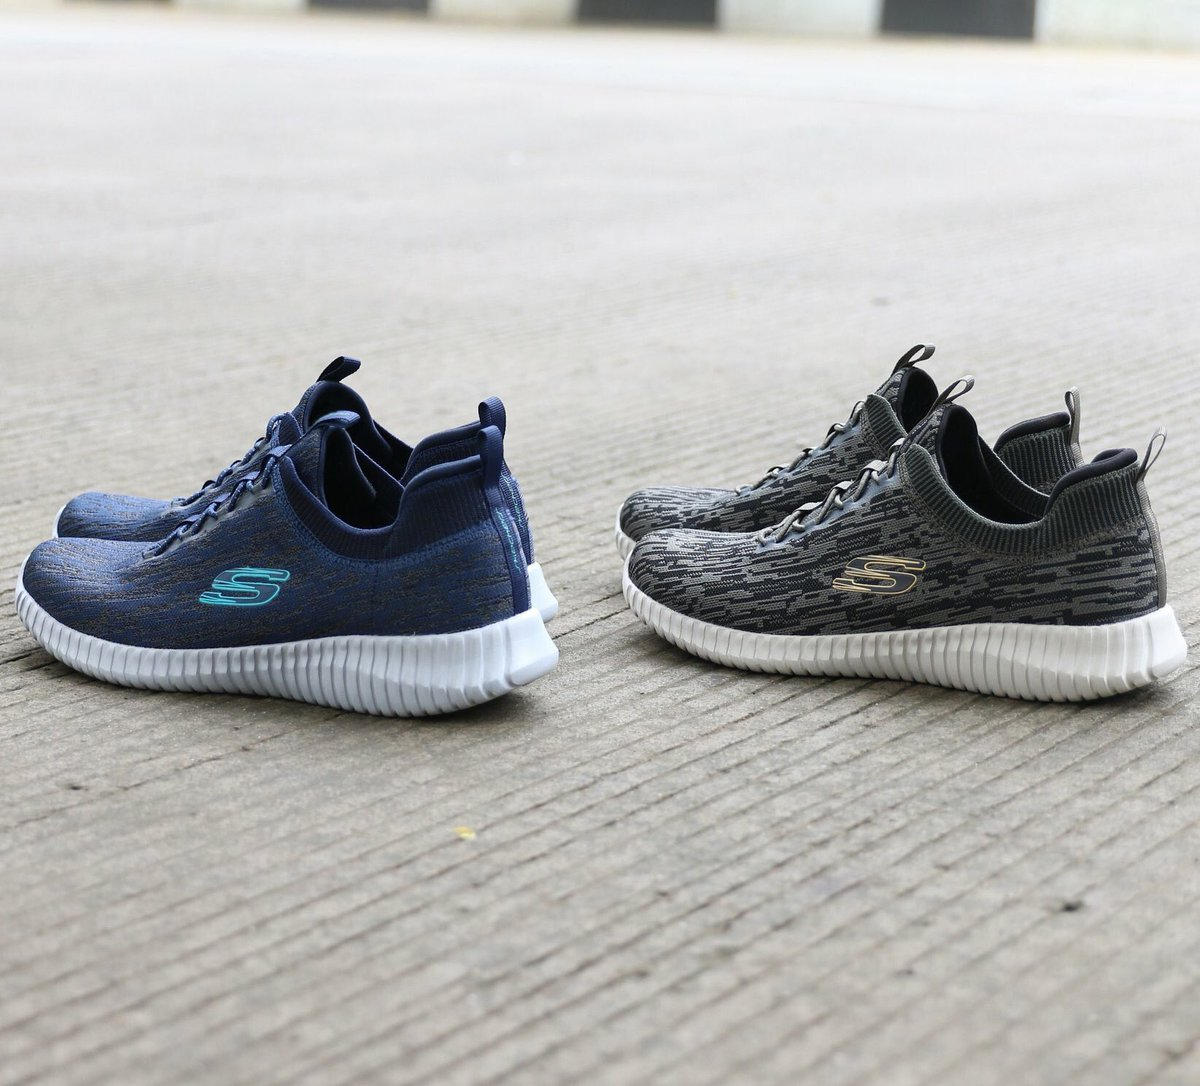 skechers shoes indonesia